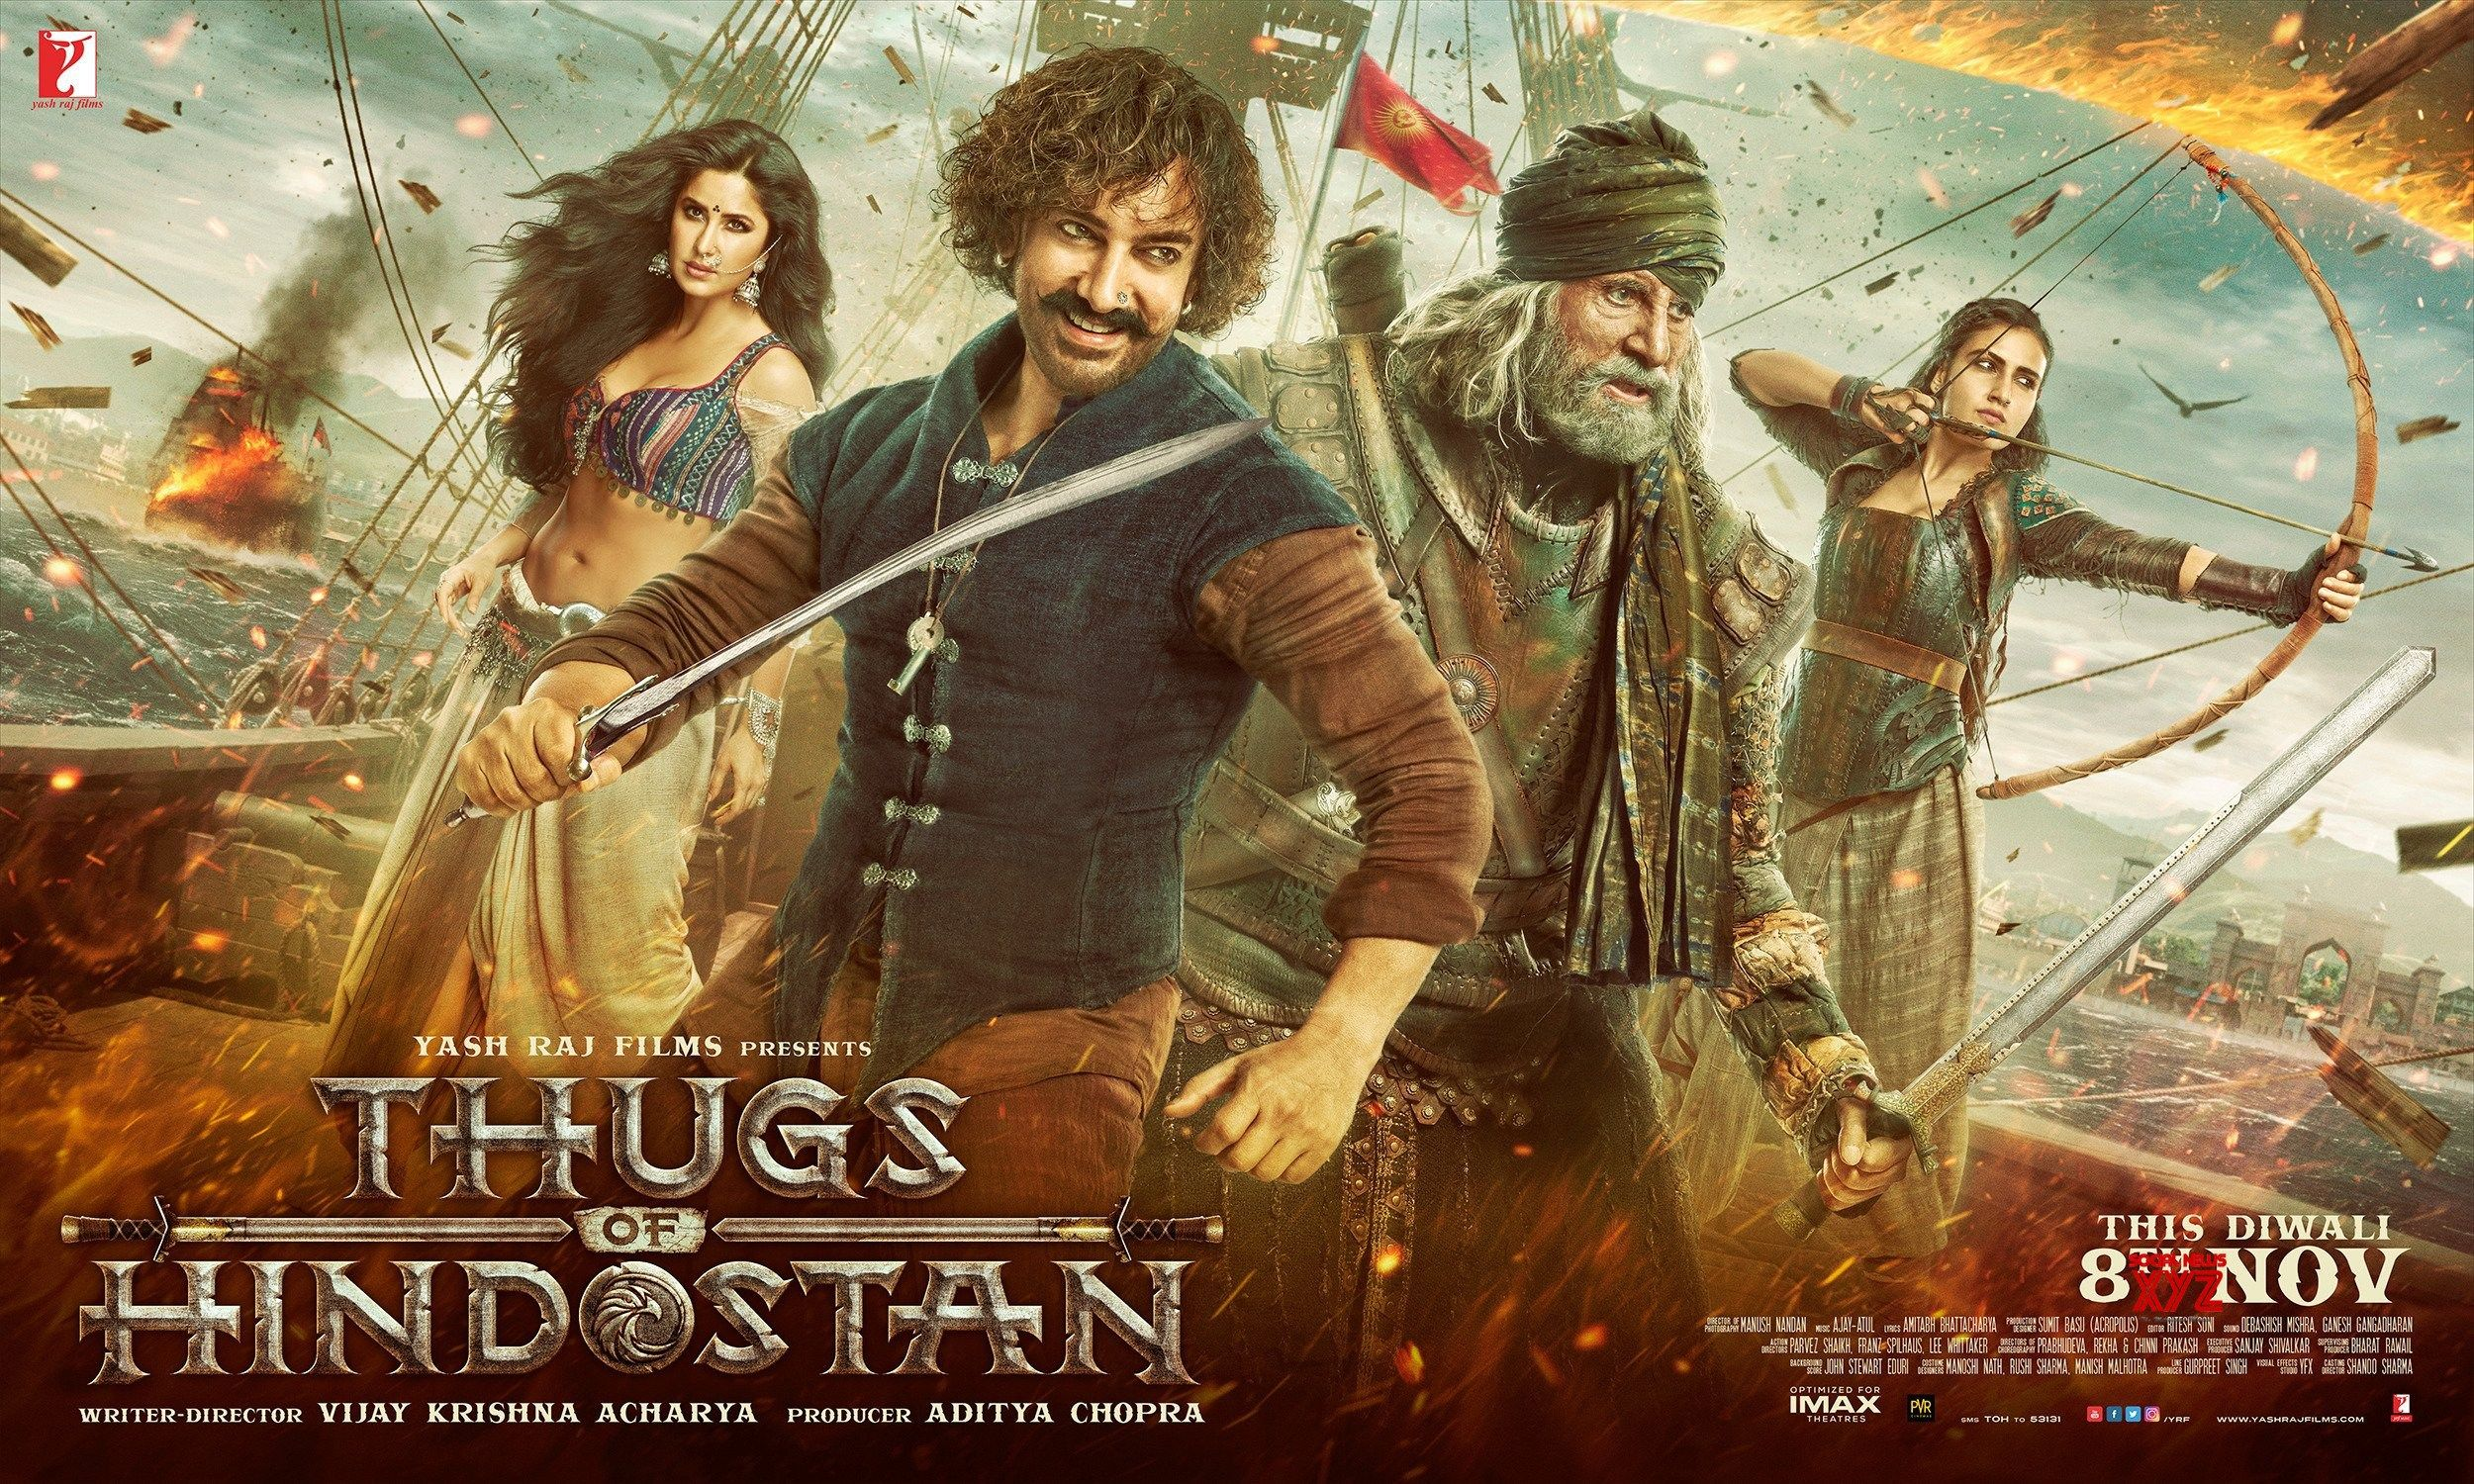 Thugs Of Hindostan Movie Hd Posters Social News Xyz Download Movies Full Movies Download Free Movie Downloads